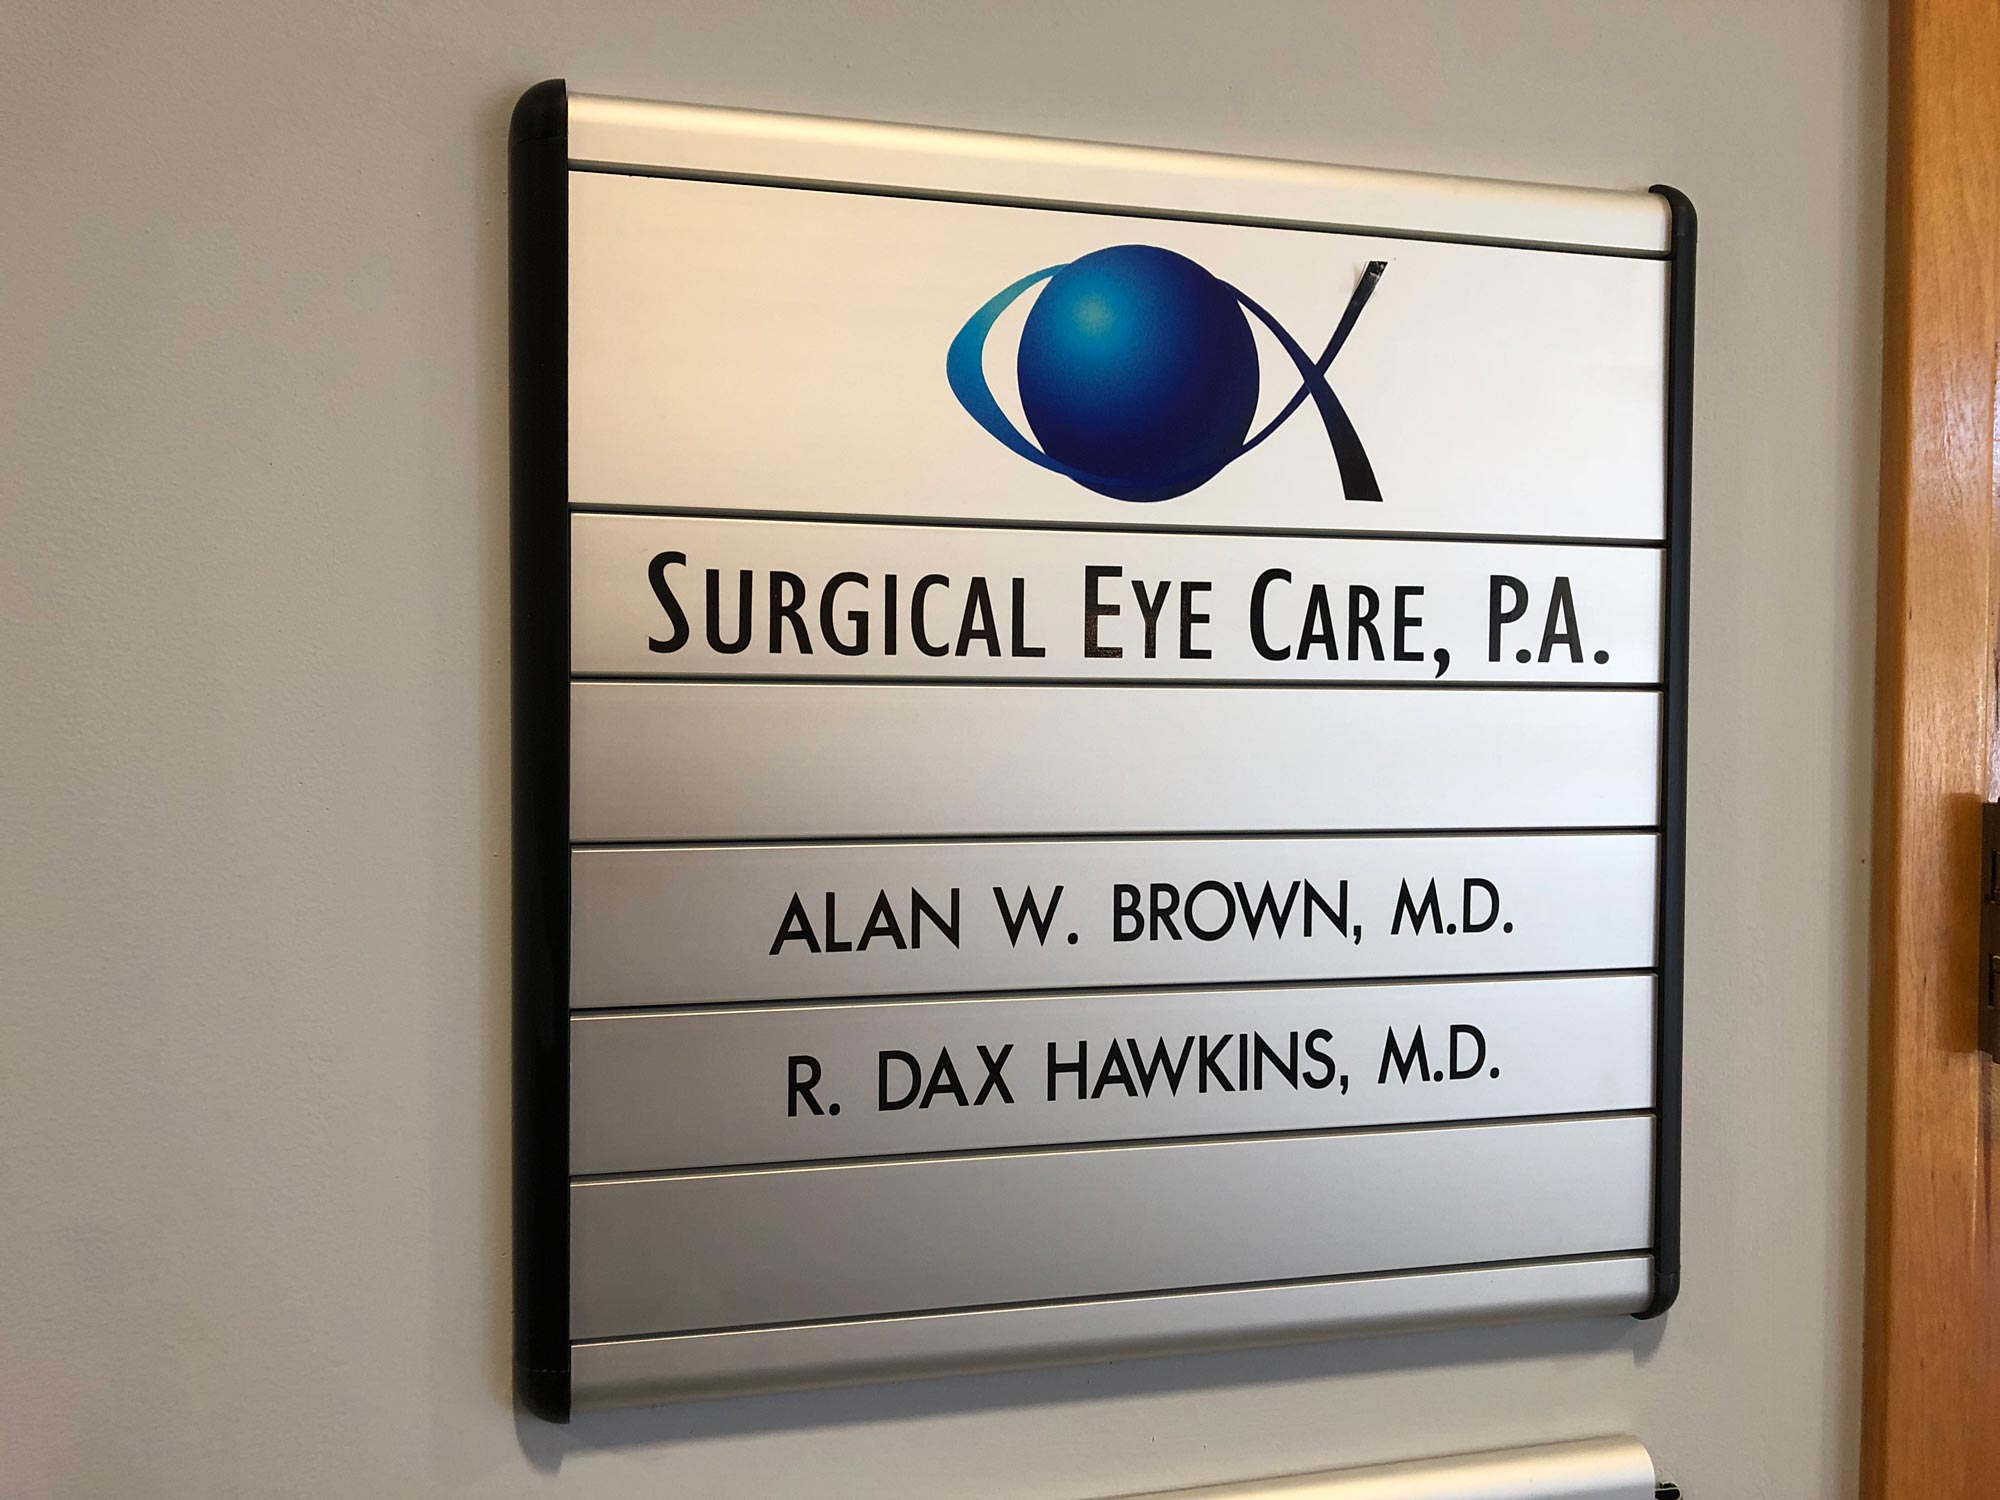 Wilmington, NC and Supply, NC Surgical Eye Care locations